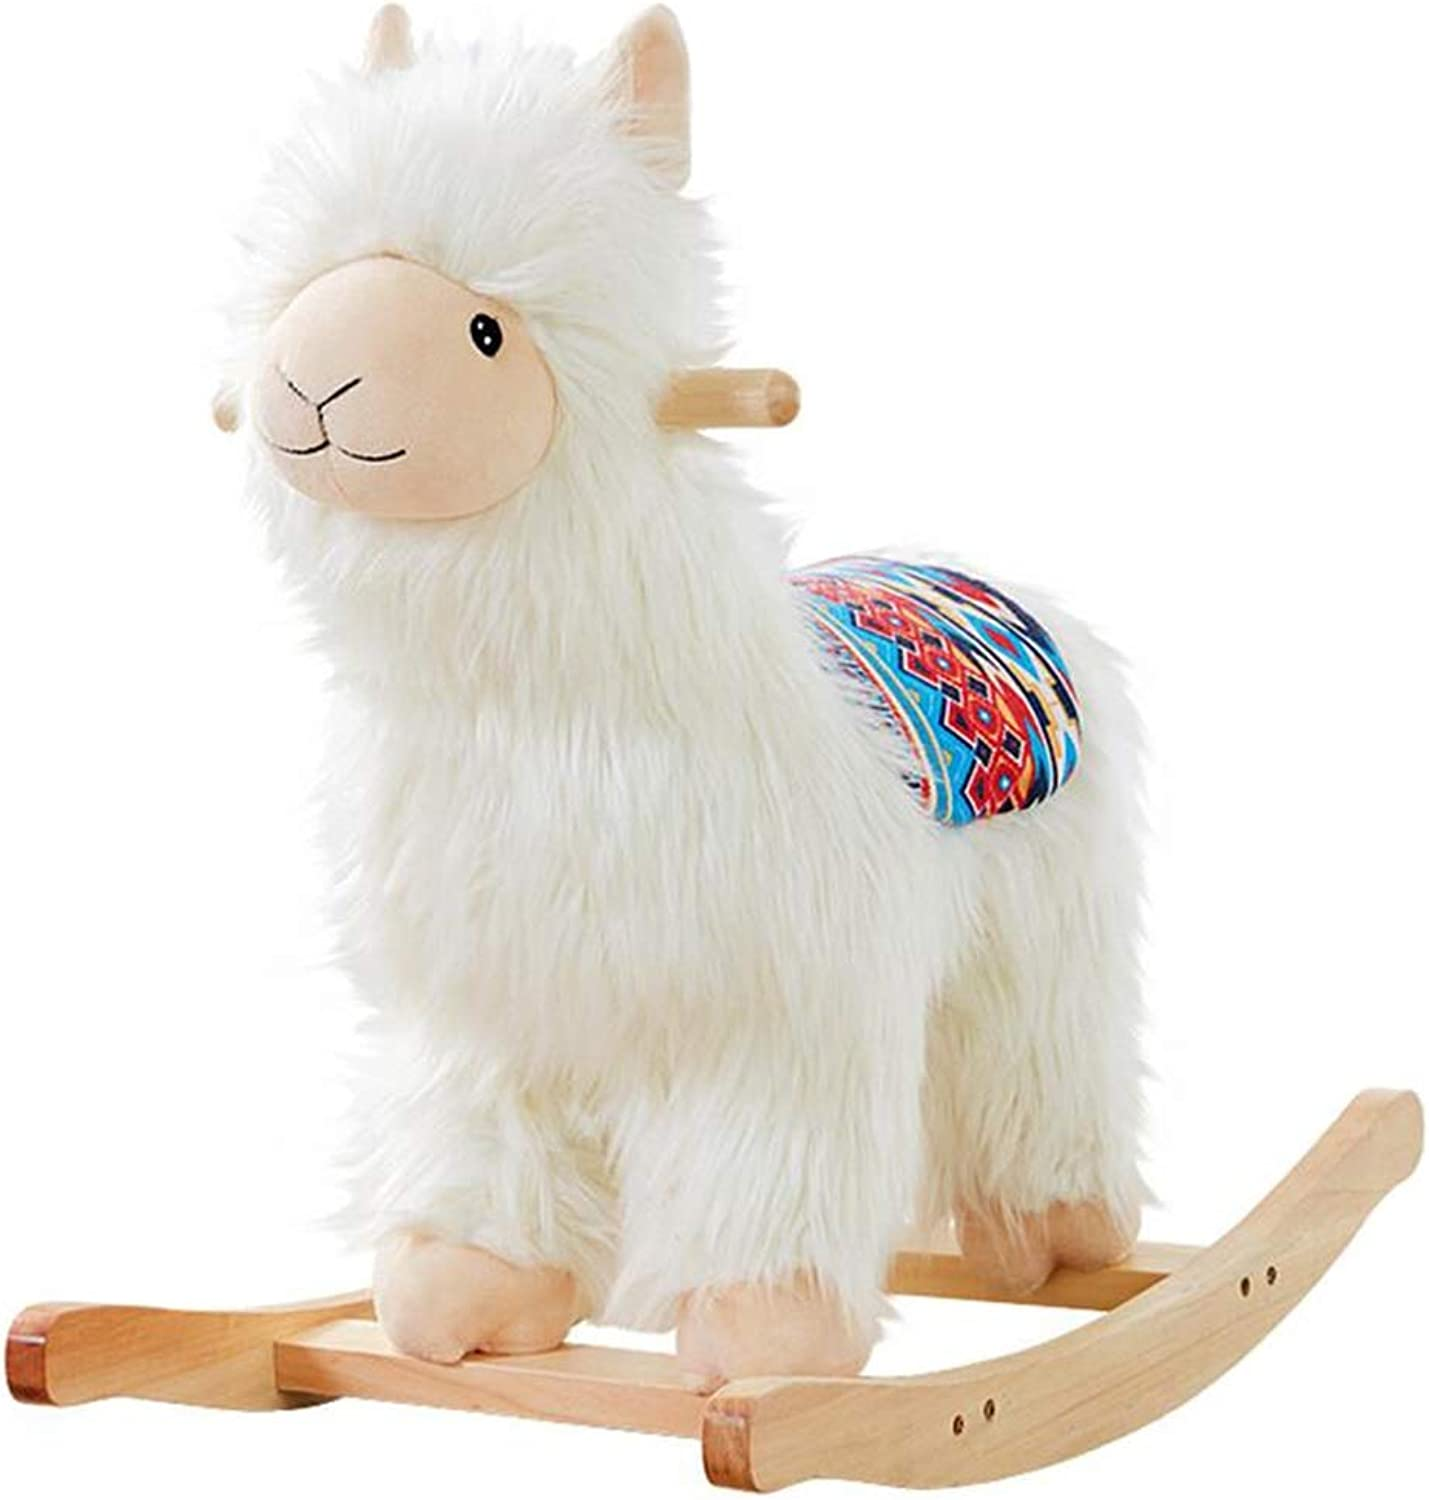 Rocking Horses Toys & Games Baby & Toddler Toys Alpaca Trojan Solid Wood Rocking Chair Baby Toys Cute Cartoon Birthday Gift 1-3 Years Old Baby Rocking Chair